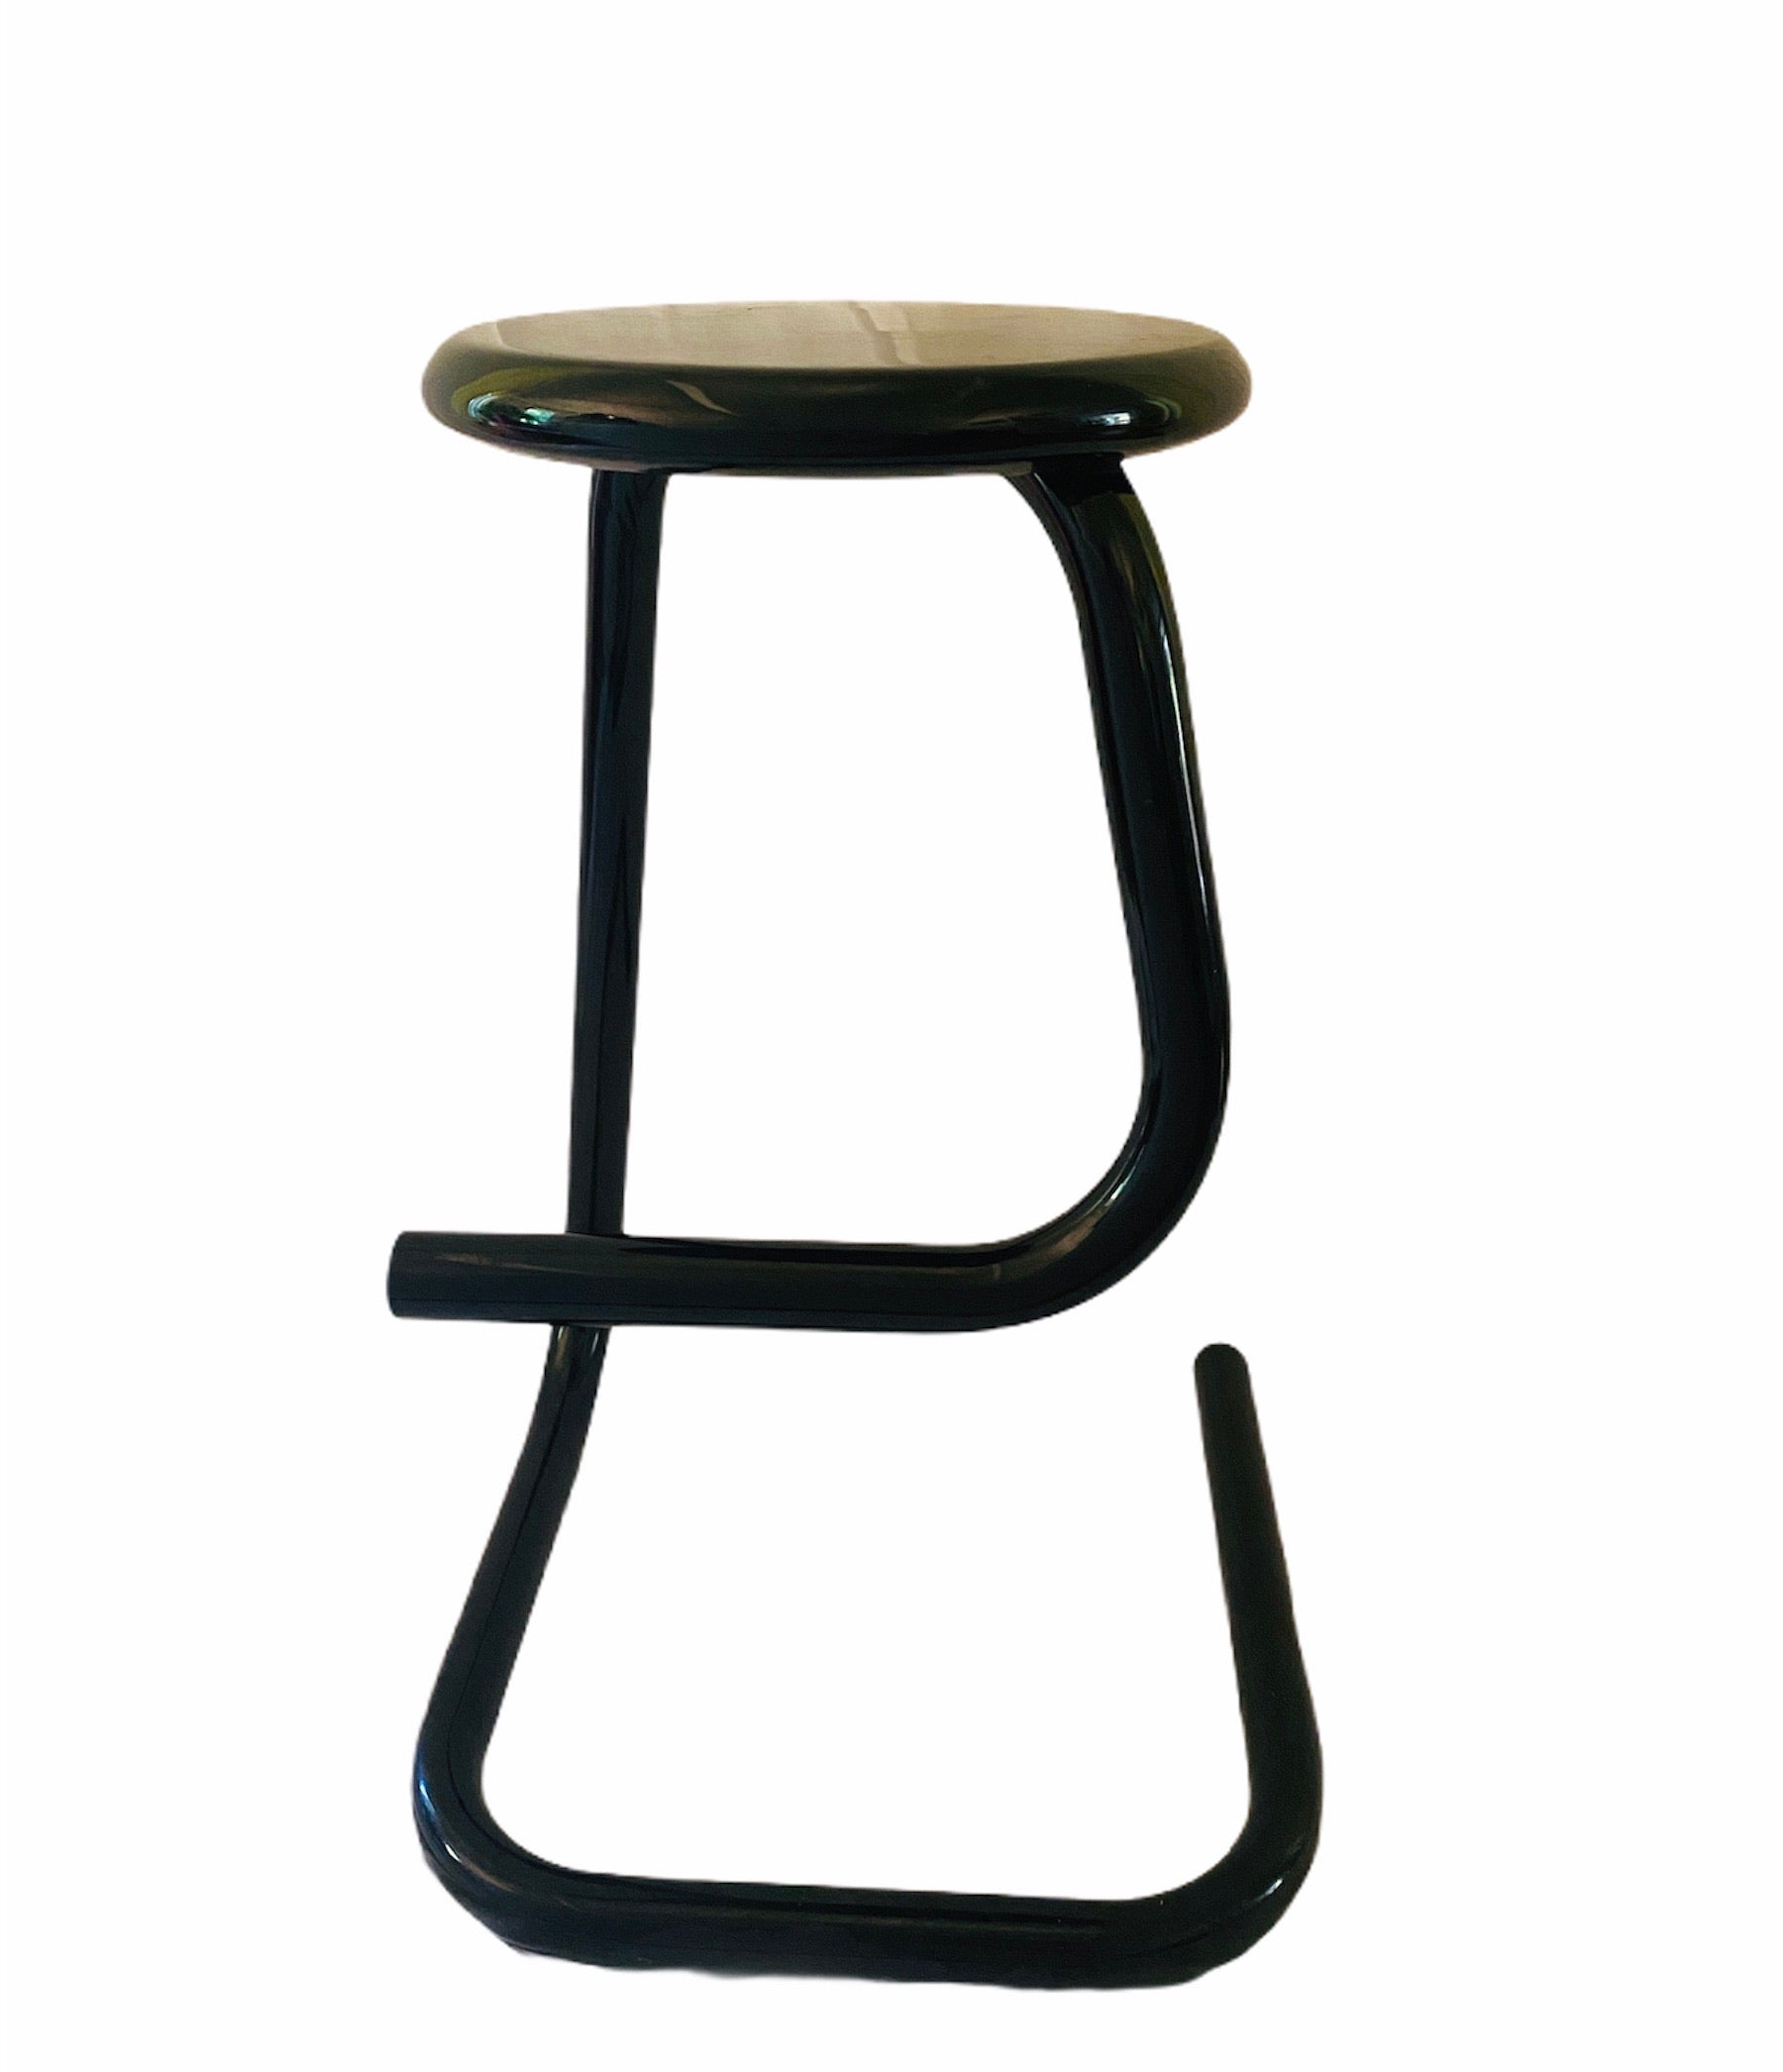 Haworth K700 Paperclip Stool by Kinetics